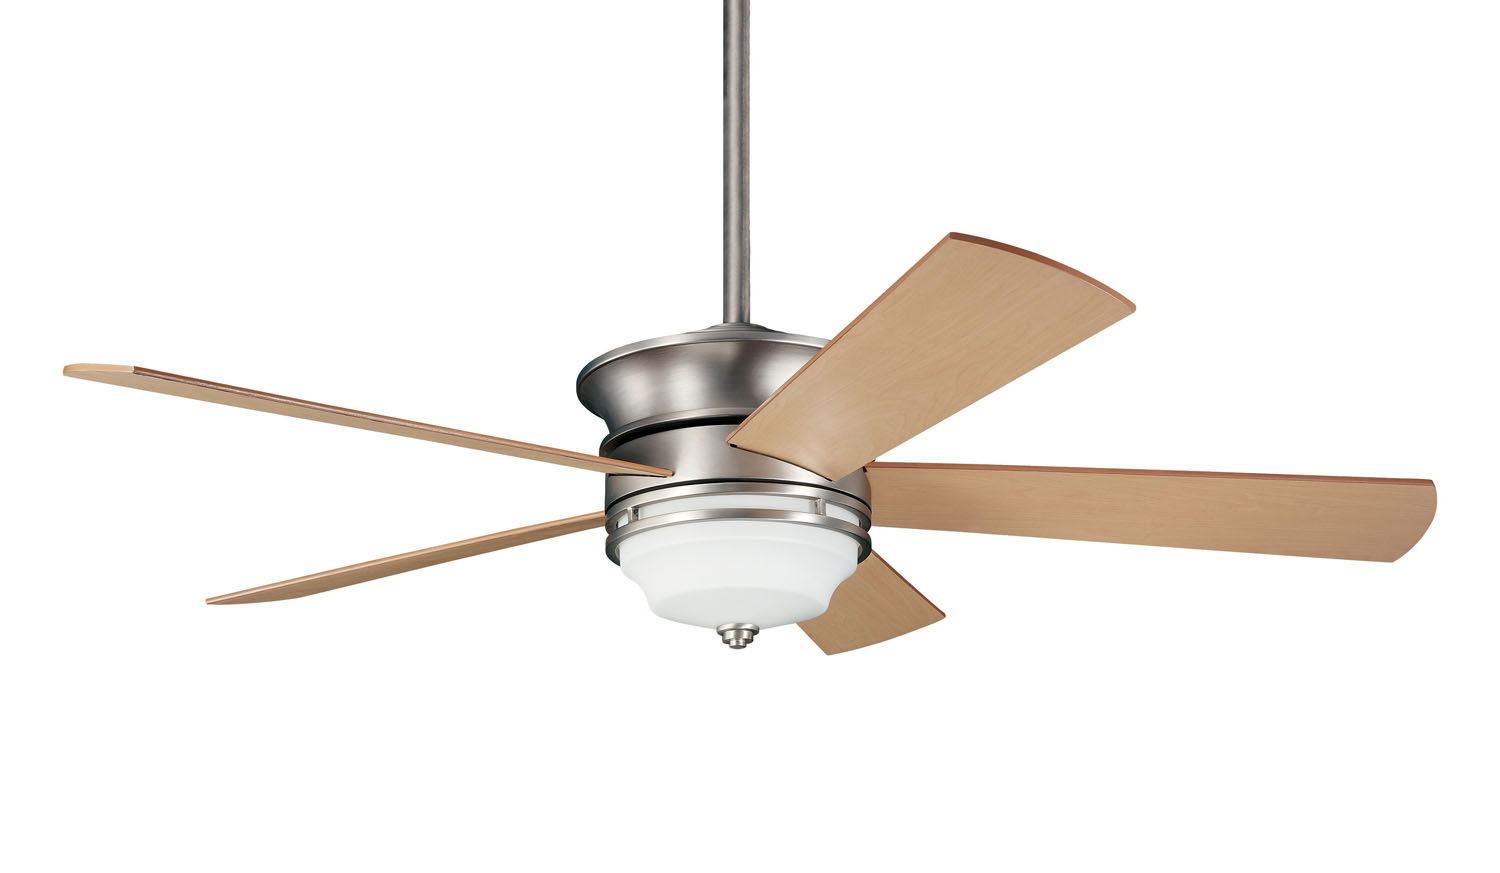 52 inchCeiling Fan from the Hendrik collection by Kichler 300114NI